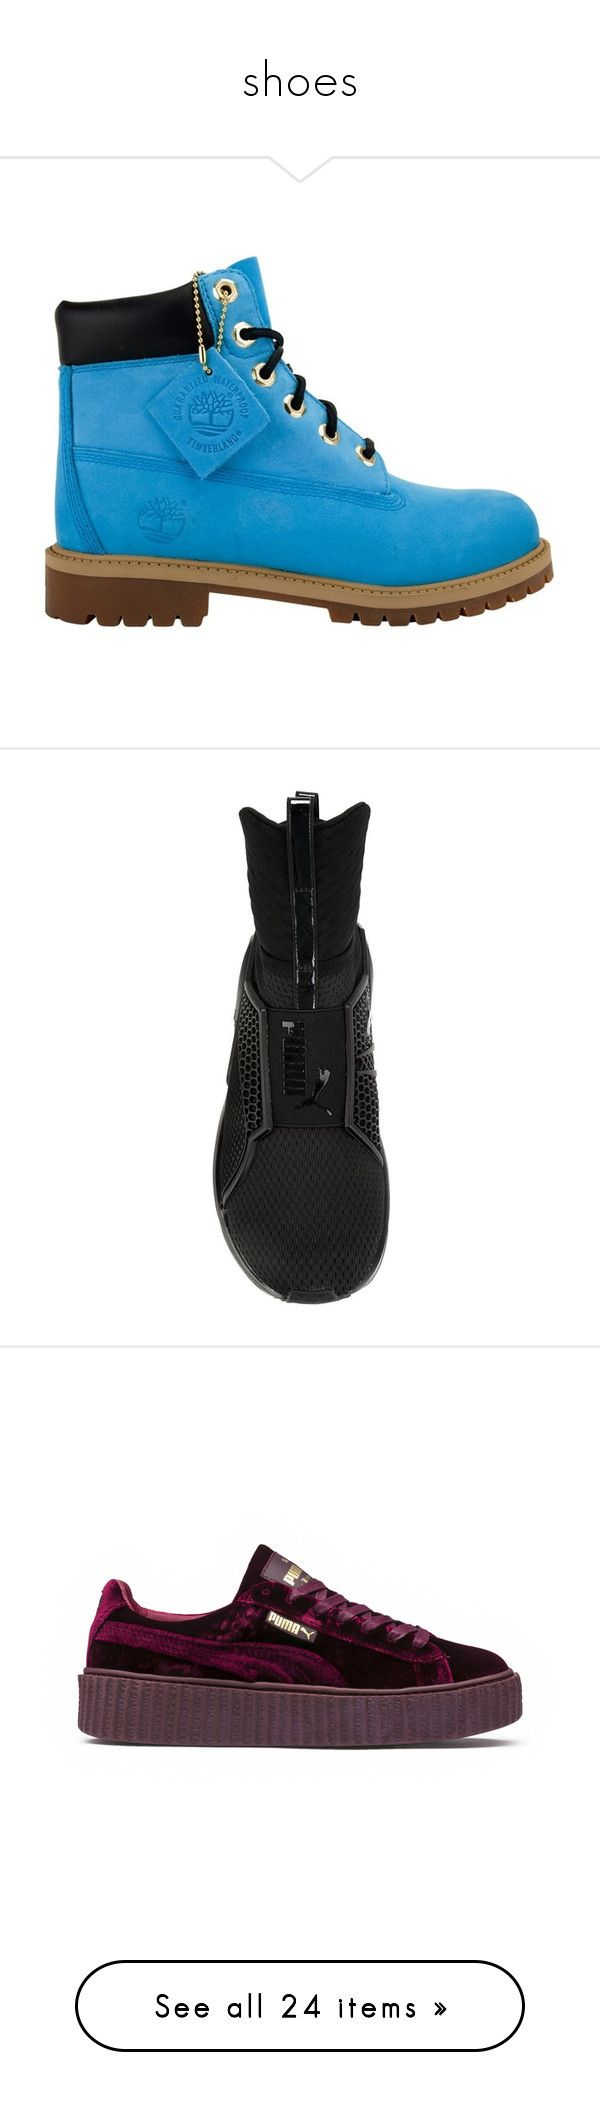 """""""shoes"""" by officialcass ❤ liked on Polyvore featuring shoes, boots, timberlands, tims, sneakers, puma sneakers, puma shoes, puma footwear, puma trainers and flats"""